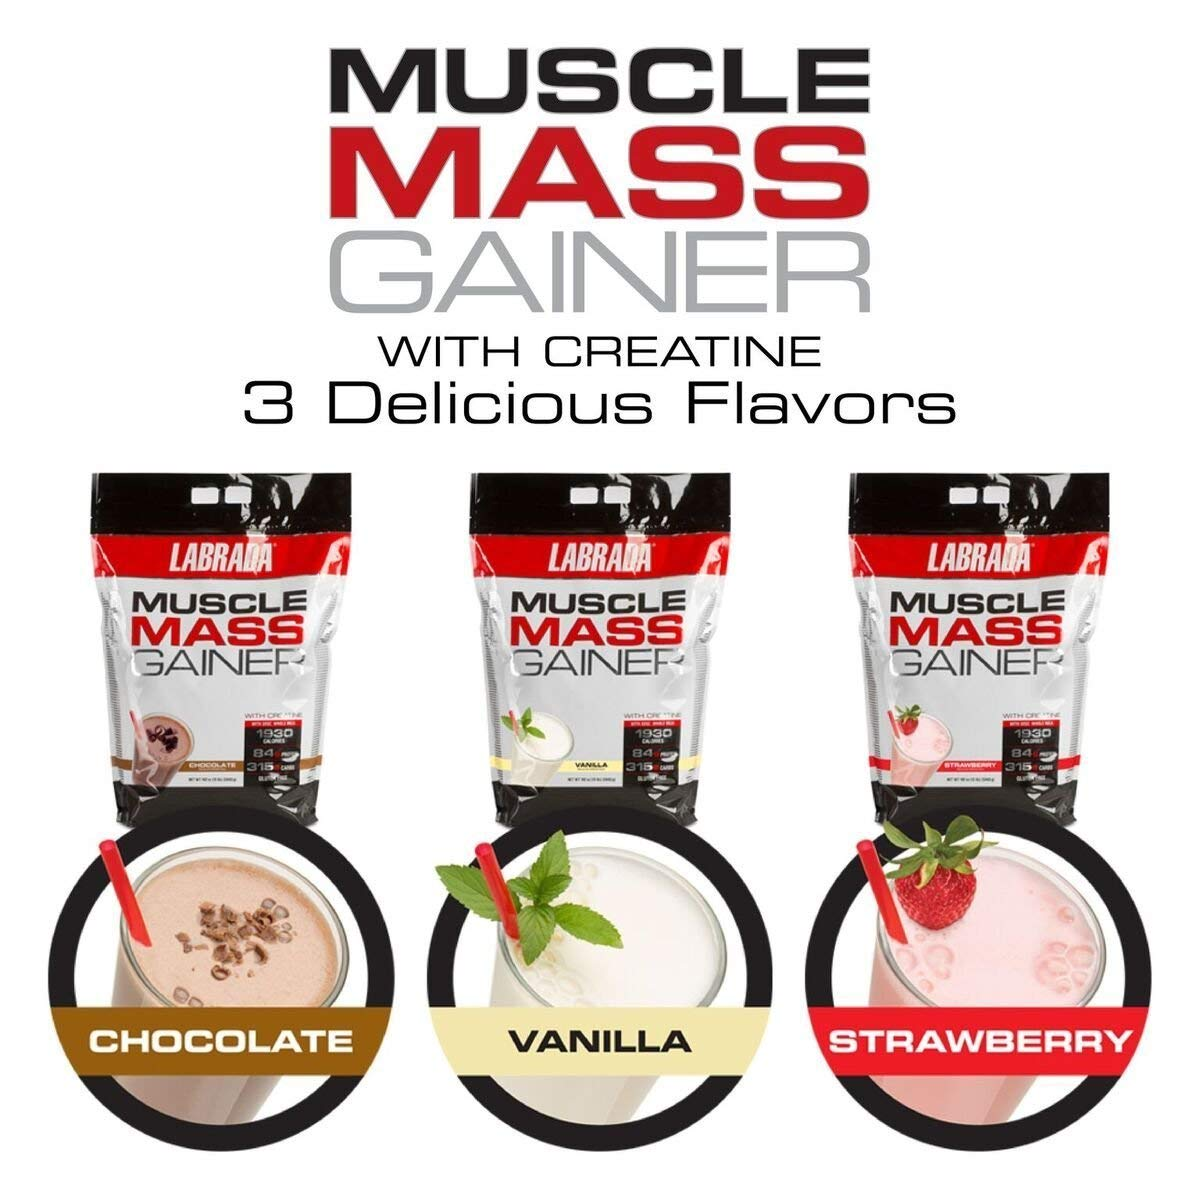 Labrada Nutrition Muscle Mass Gainer, Chocolate, 12 Pound by Labrada (Image #5)